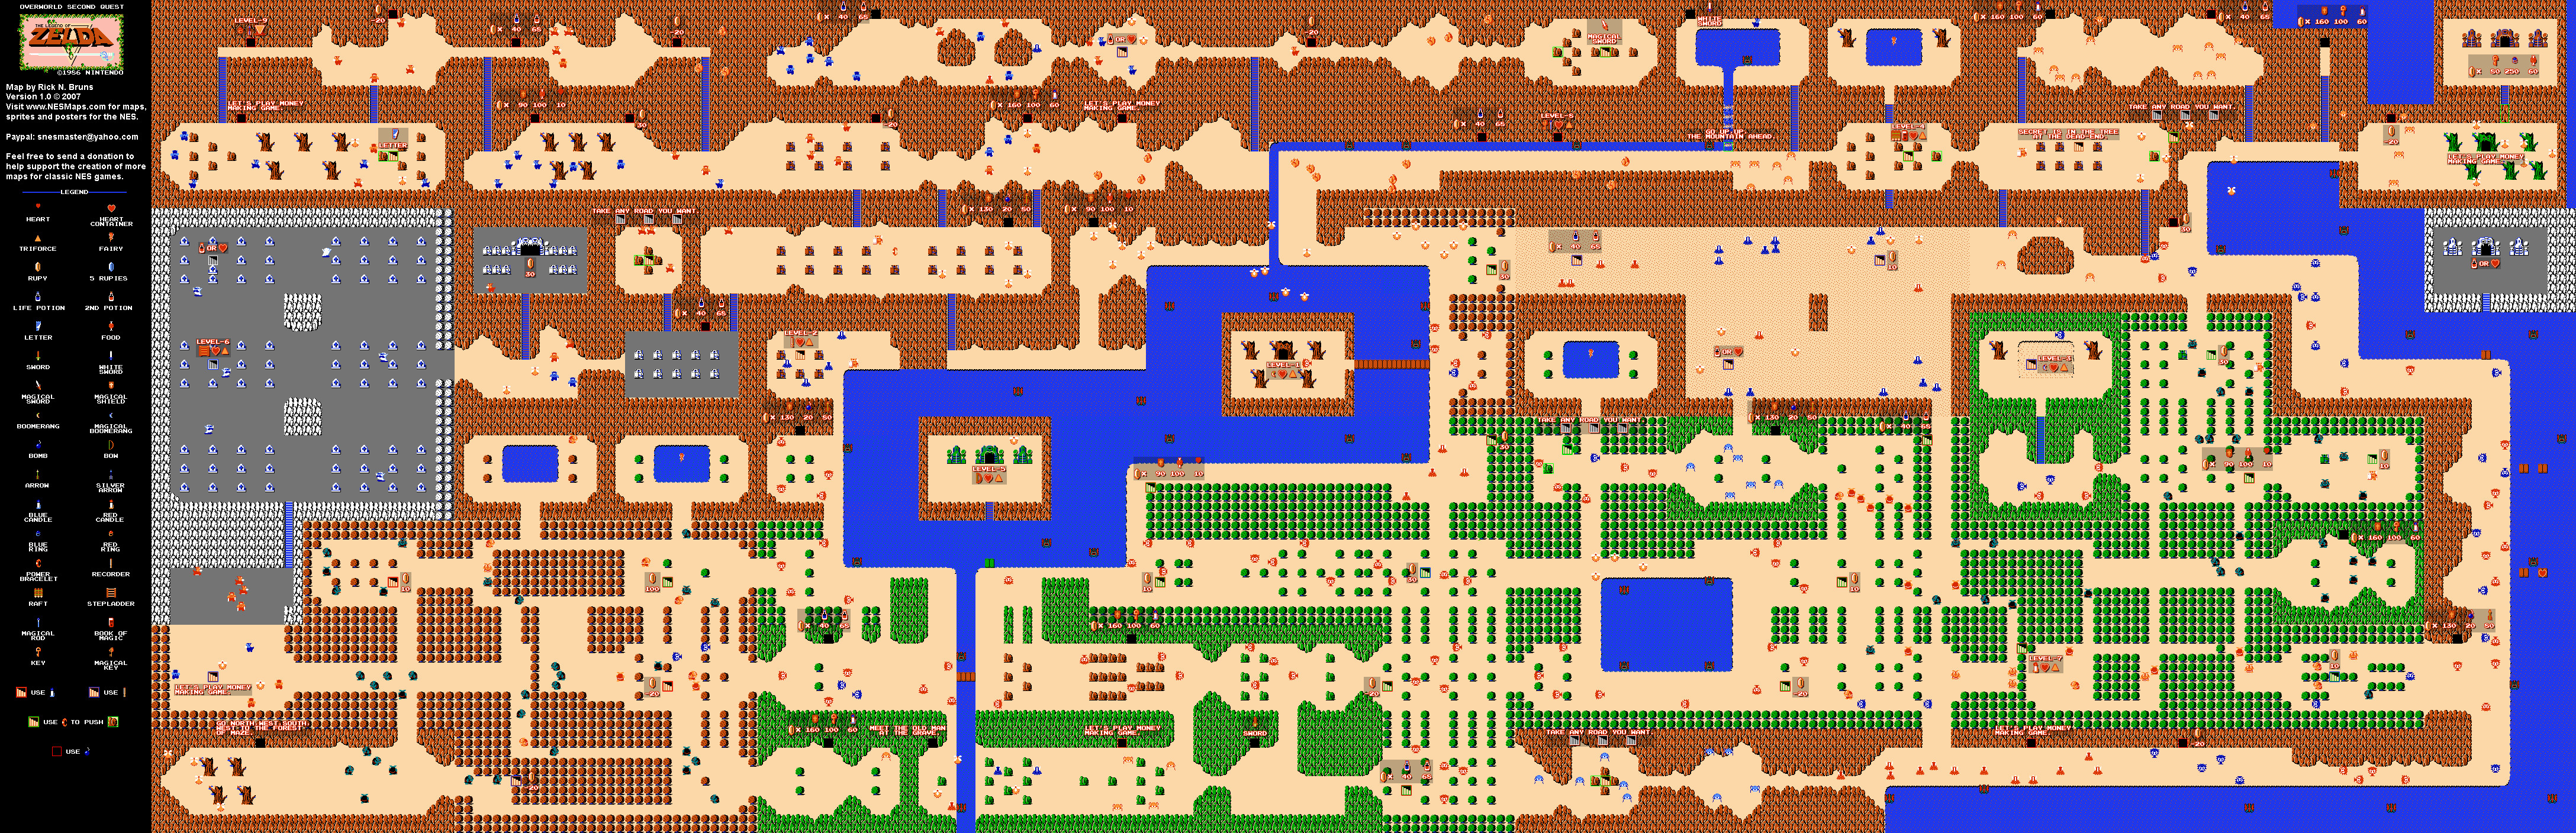 Printable Zelda Map Elegant The Legend Of Zelda Overworld Quest 2 Nes Map Map Room